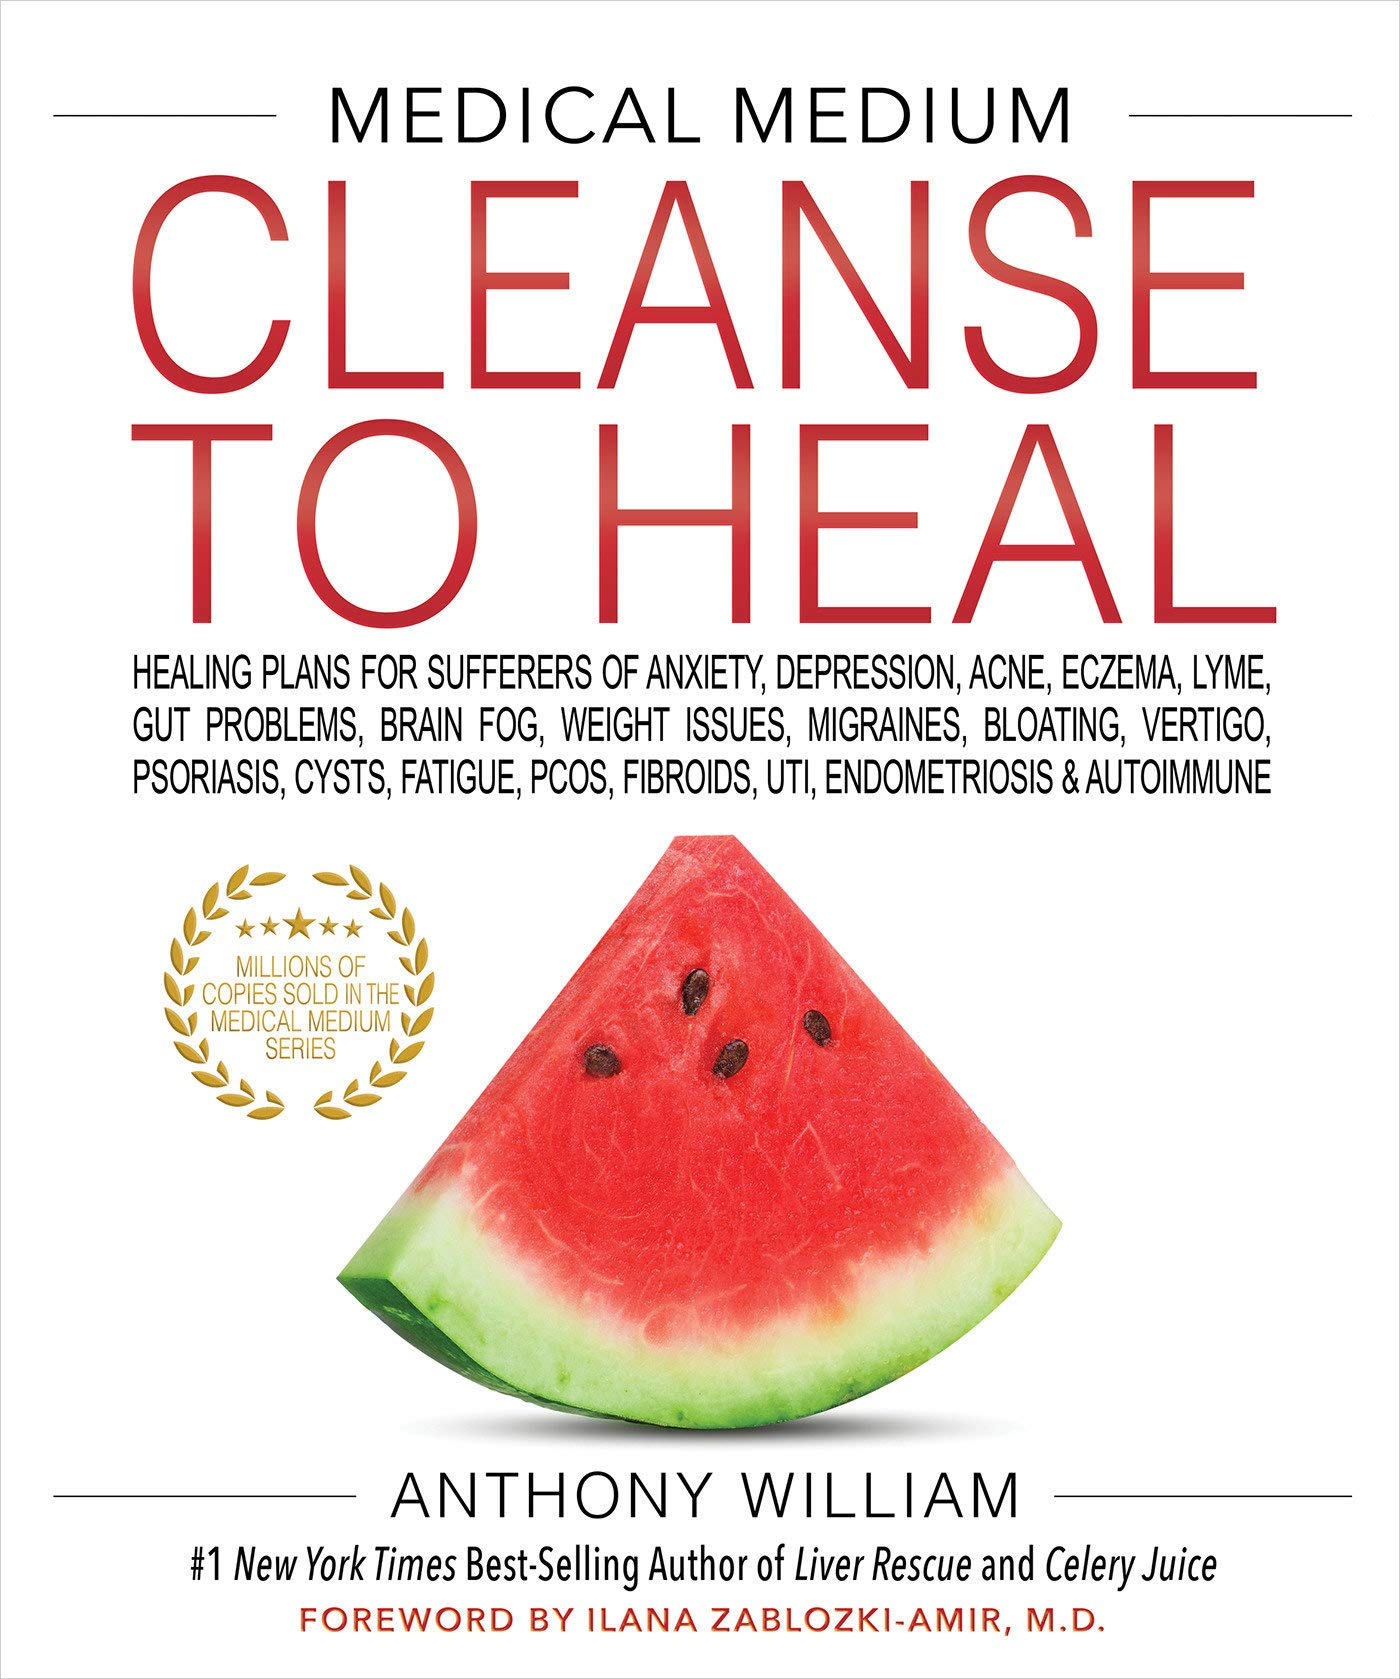 71LiWMyBm6L - Medical Medium Cleanse to Heal: Healing Plans for Sufferers of Anxiety, Depression, Acne, Eczema, Lyme, Gut Problems, Brain Fog, Weight Issues, Migraines, Bloating, Vertigo, Psoriasis, Cys